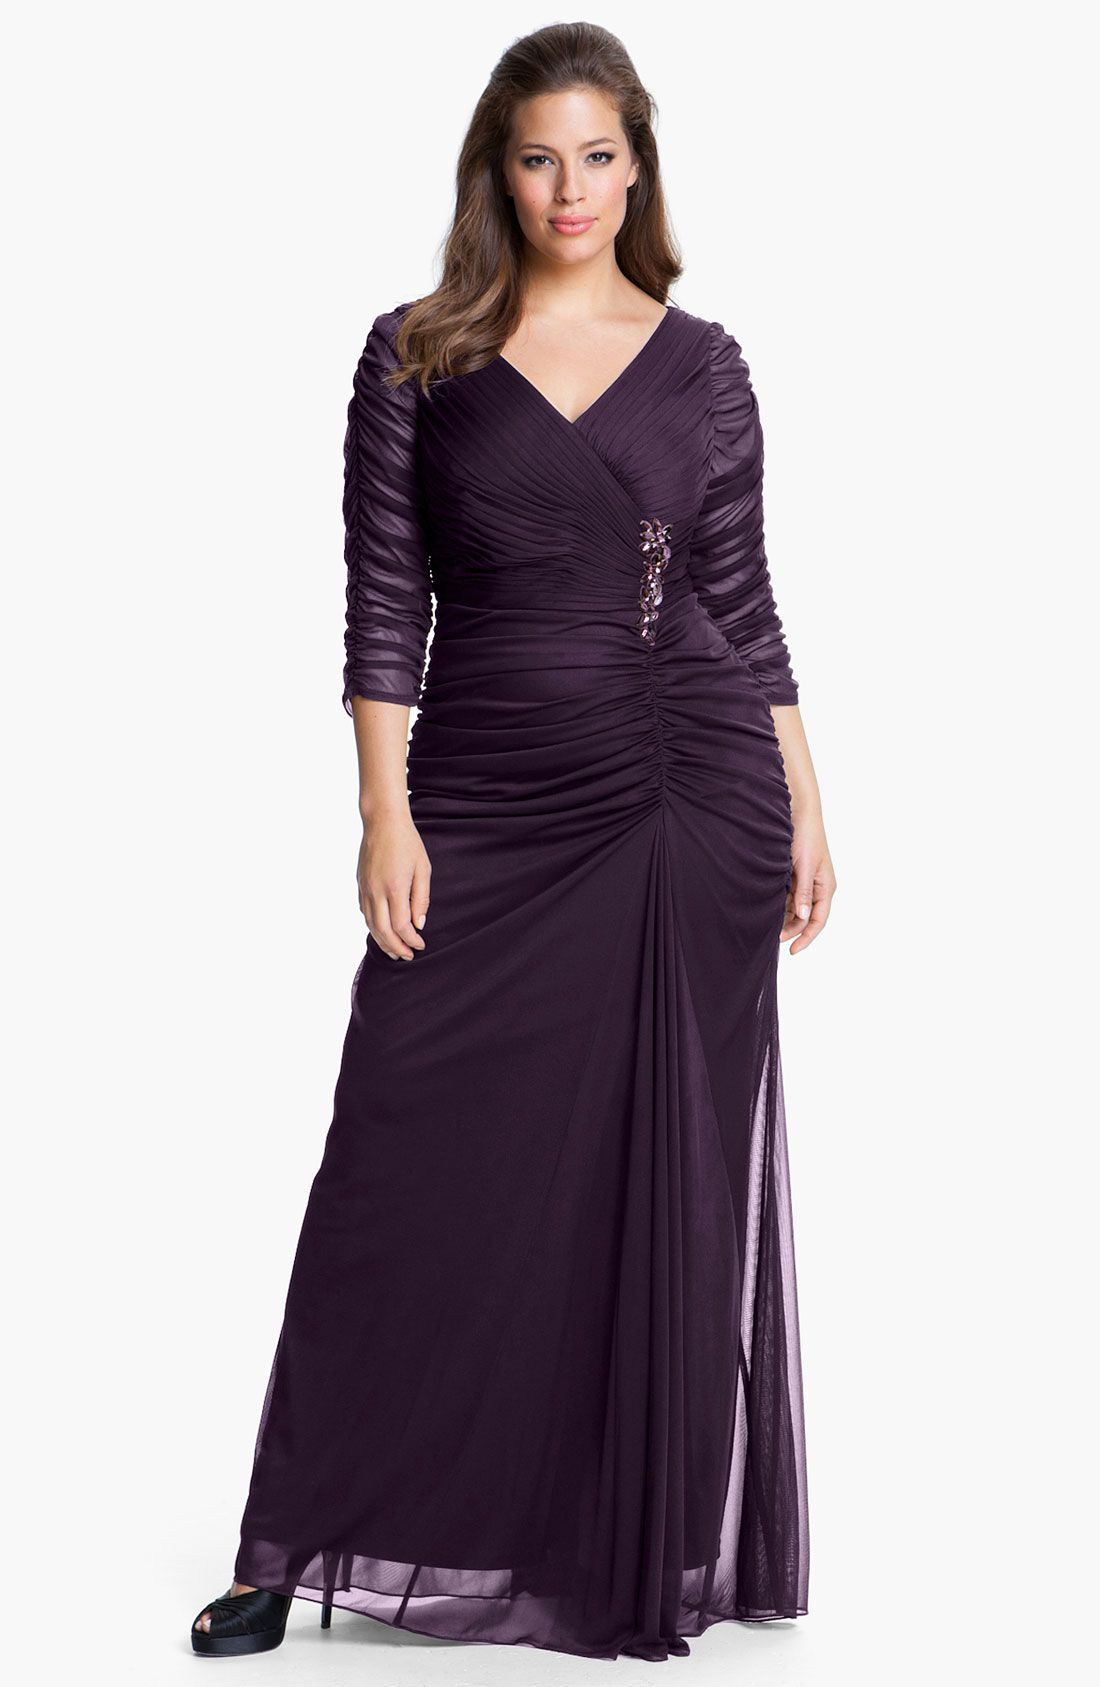 57c09502059 Free shipping and returns on Adrianna Papell Beaded Mesh Gown (Plus Size)  at Nordstrom.com. Ruched mesh overlays a statuesque V-neck gown fashioned  with ...